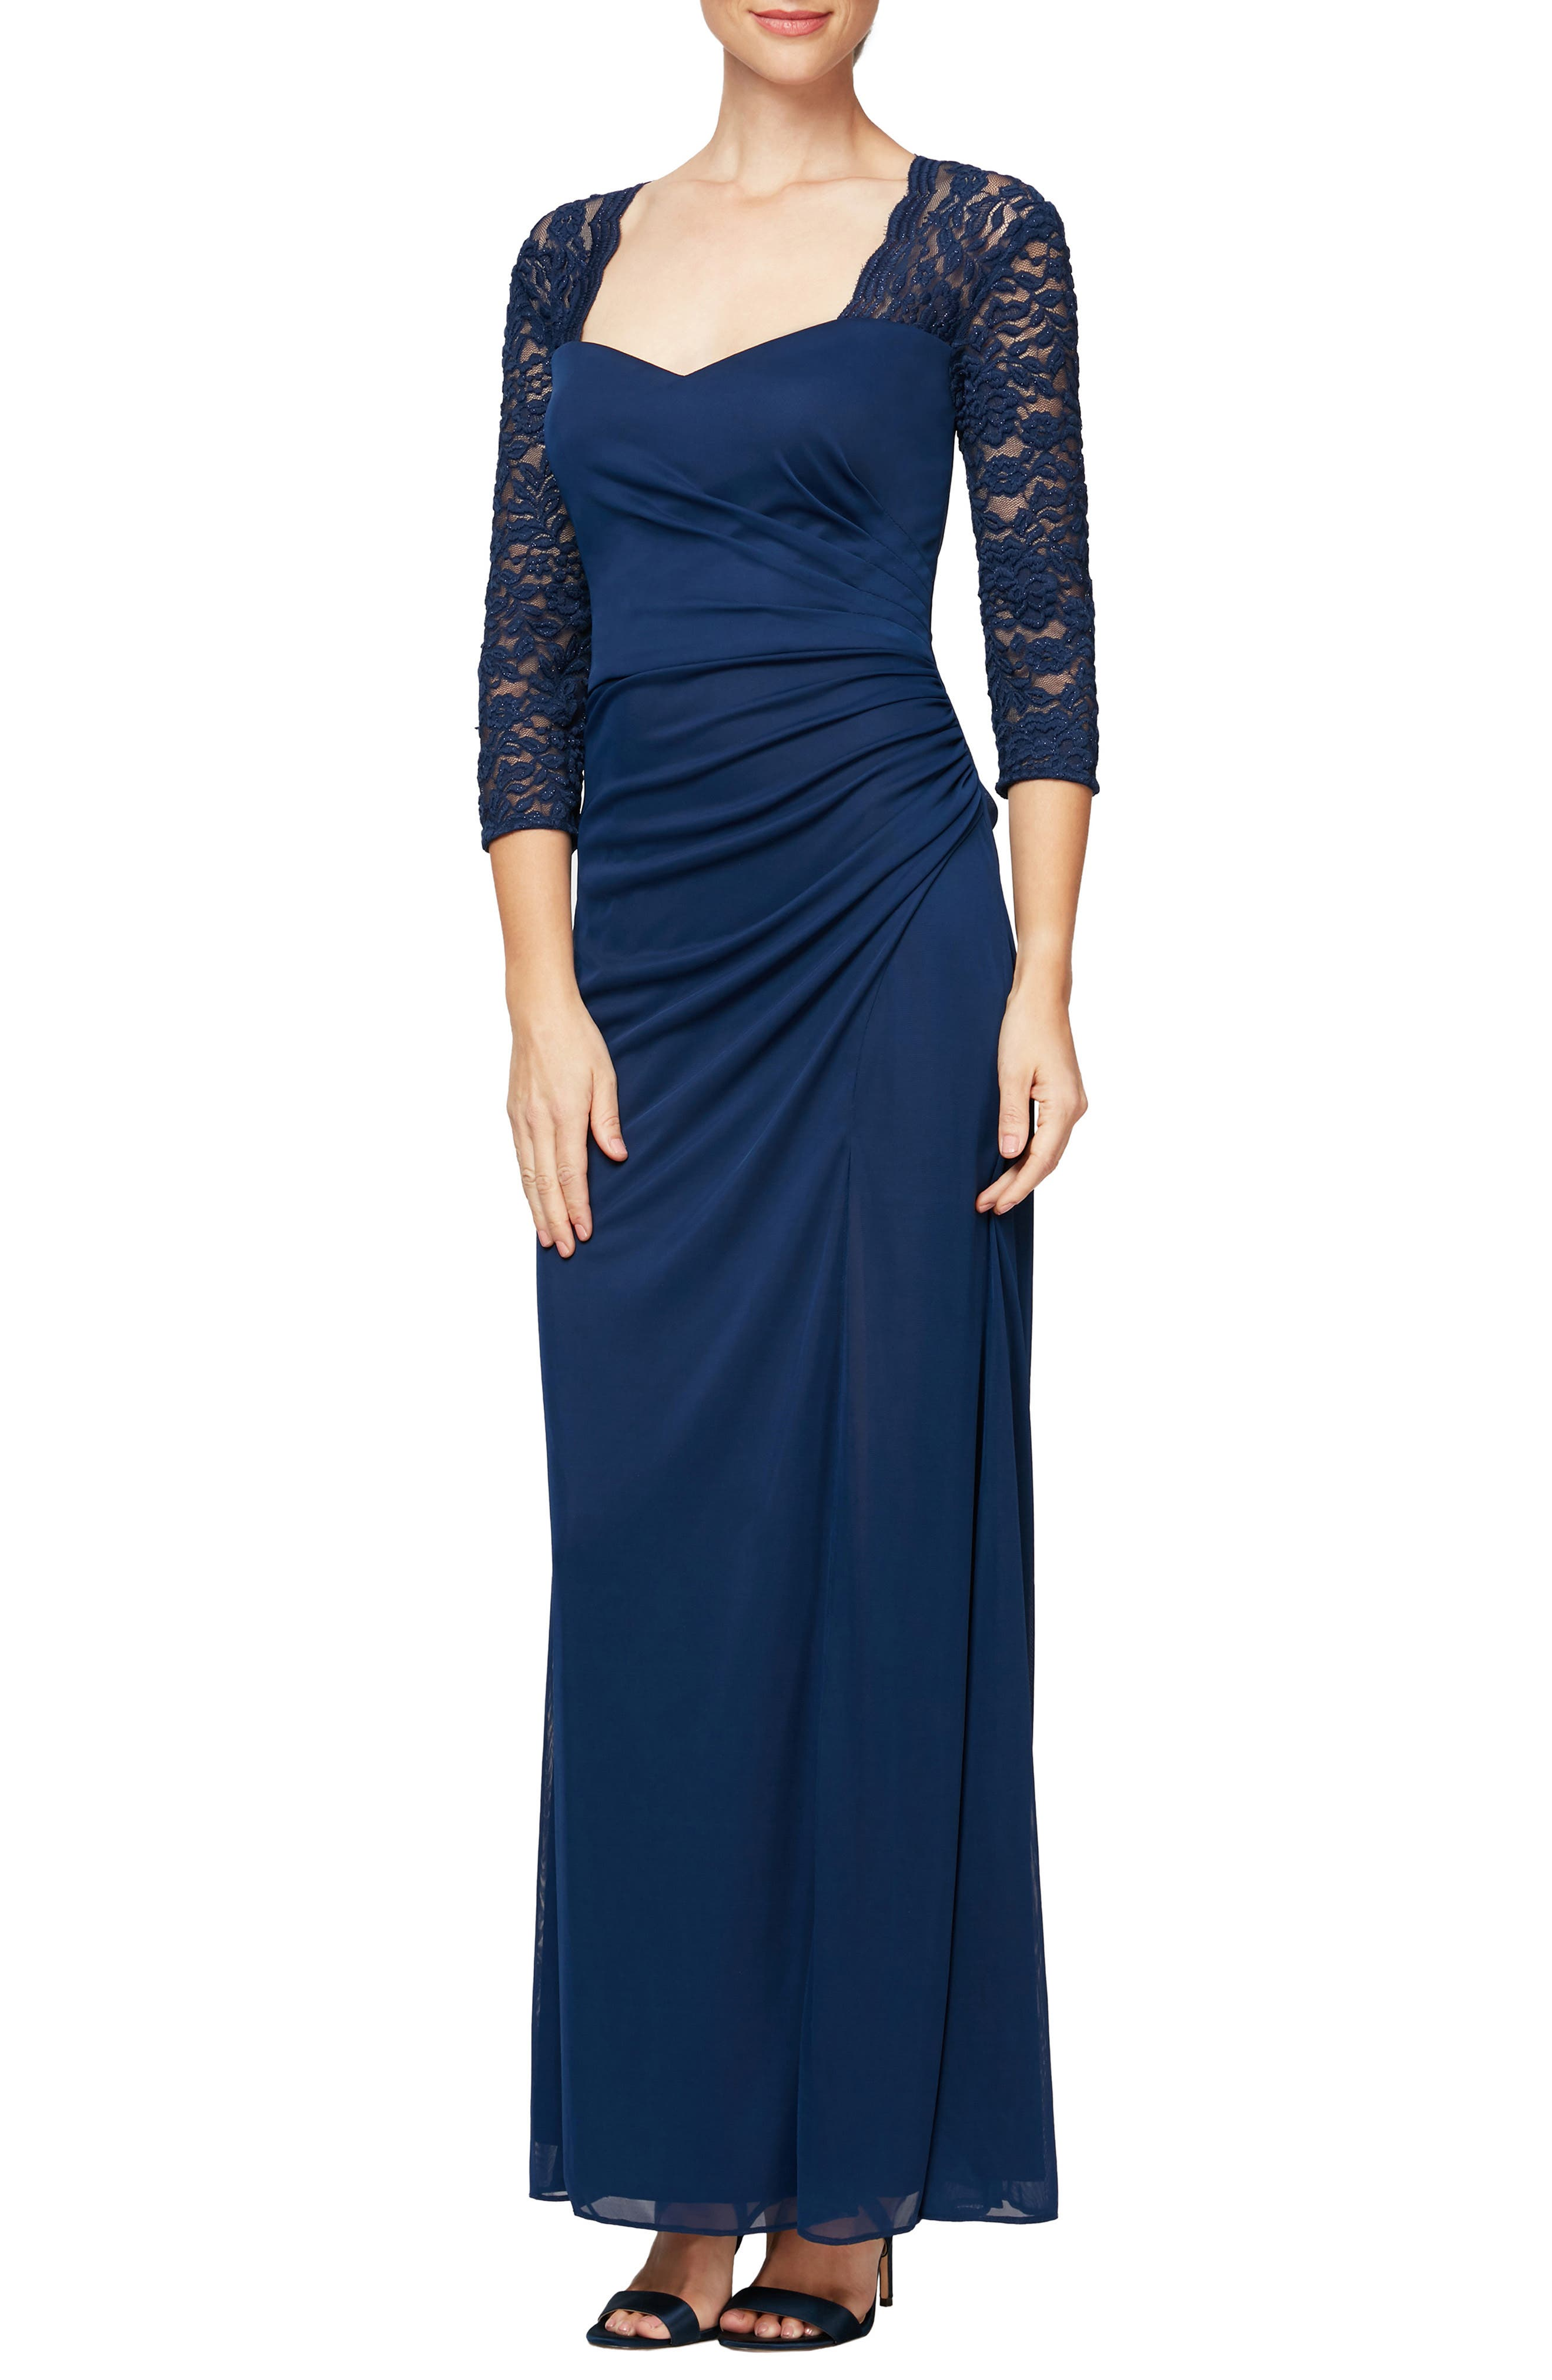 Rivet all eyes on you in this sweetheart-neckline gown that flatters your shape with a ruched chiffon overlay and finishes the sleeves and back in rosetta lace. Style Name: Alex Evenings Lace Yoke & Sleeves Ruched Gown (Regular & Petite). Style Number: 6020332. Available in stores.